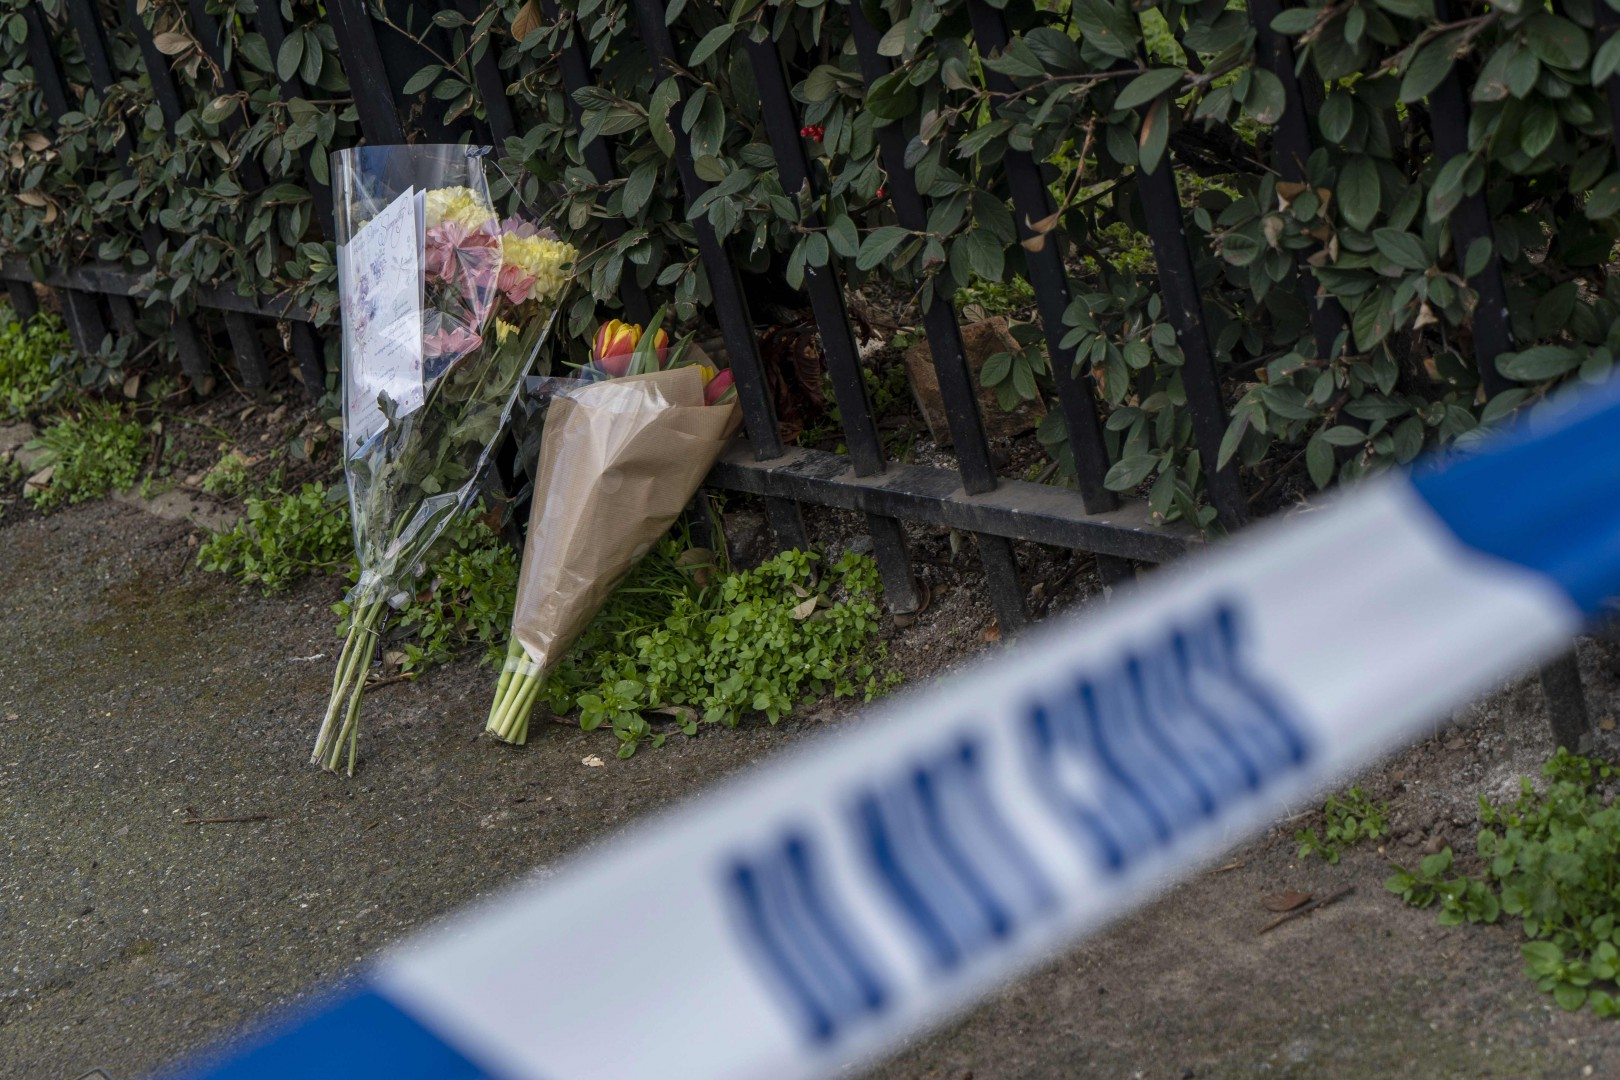 """Bouquets of flowers lie at the scene of the fatal stabbing of a man in Leyton, east London, on March 7, 2019 - The man's death follows a string of high-profile stabbings in recent days which have prompted warnings of a """"national emergency"""" and sparked intense scrutiny of reductions in the size of the police workforce. (Photo by Niklas HALLE'N / AFP)"""